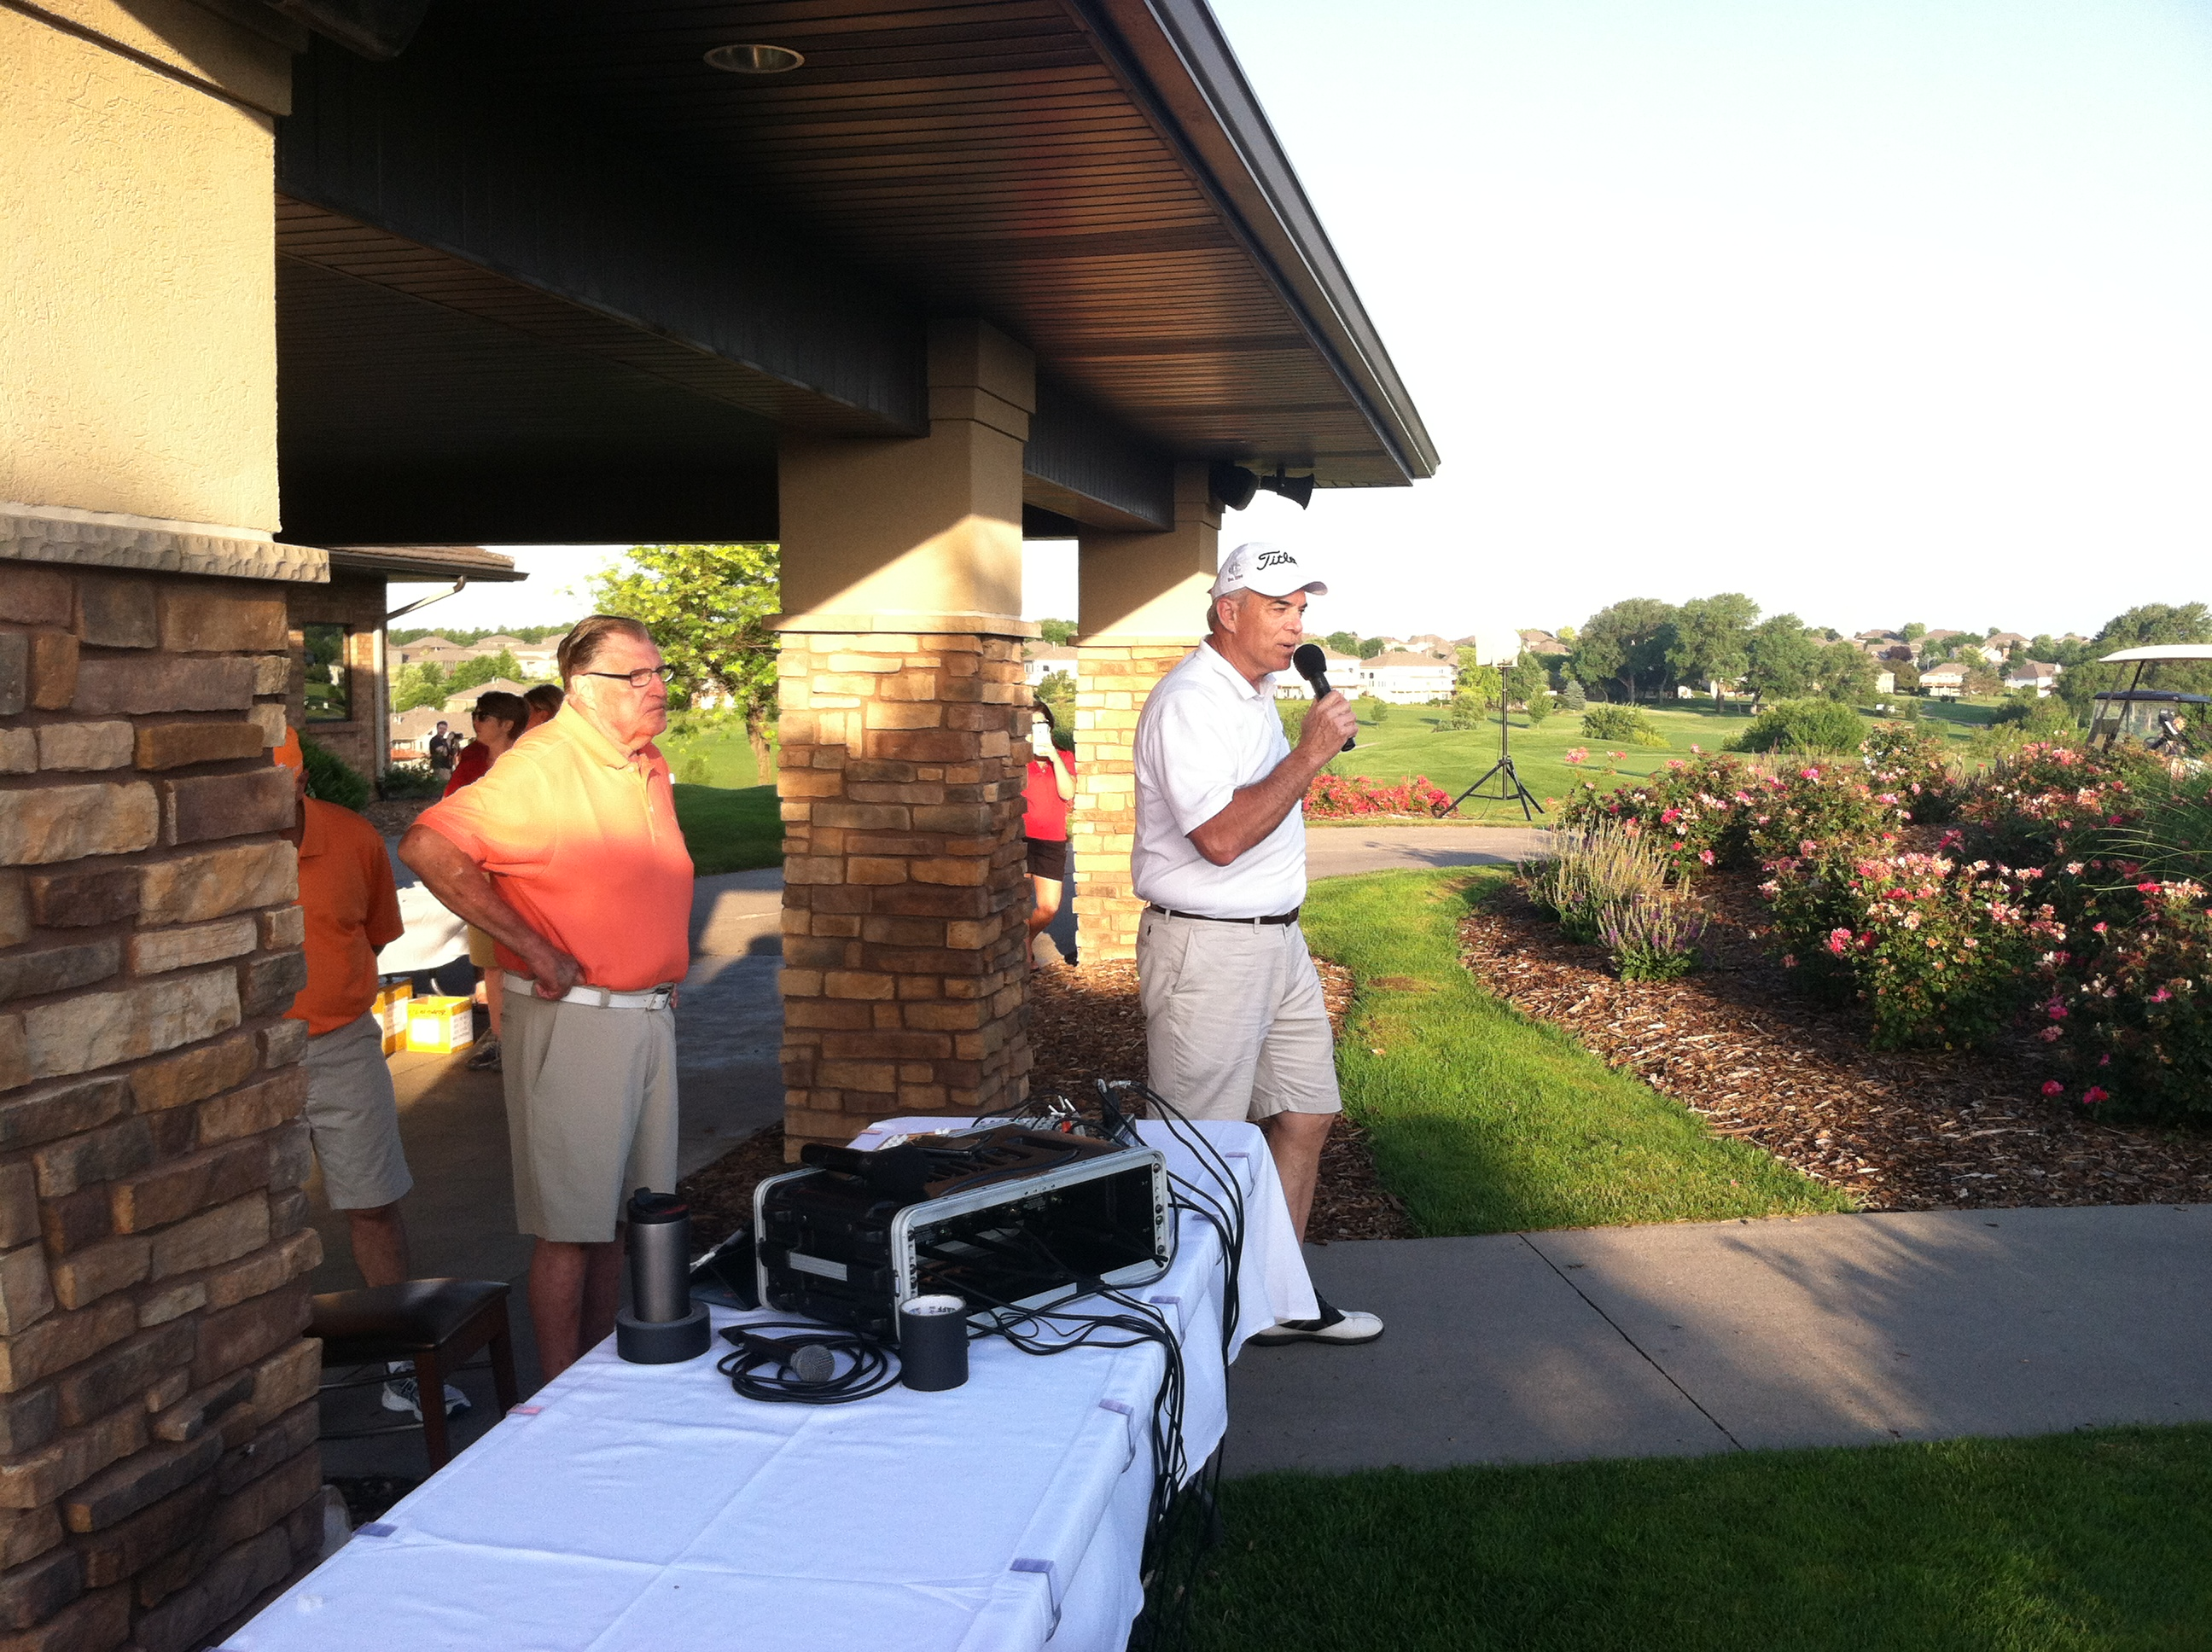 Chamber President & CEO David G. Brown welcomes BOTG golfers to Tiburon.